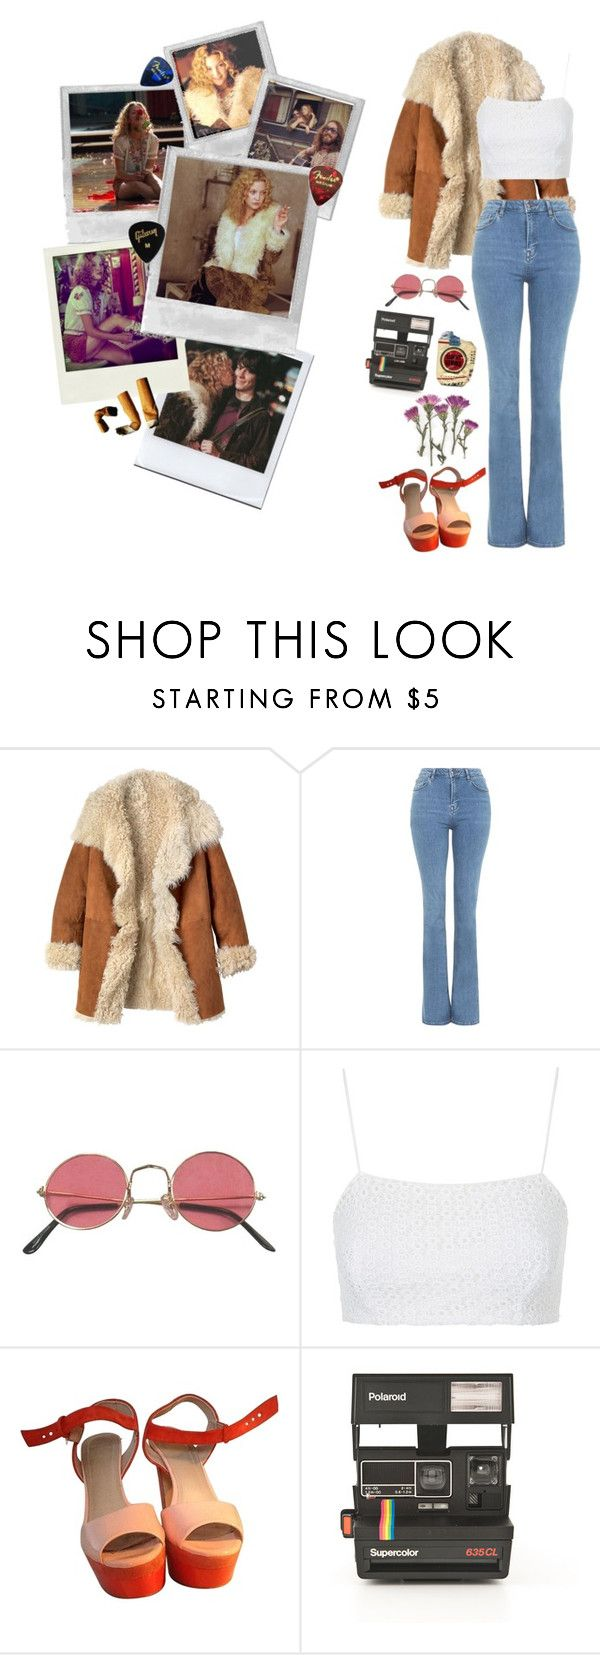 """This is Penny Lane, man. Show some respect"" by mickjaggerr ❤ liked on Polyvore featuring Toast, Almost Famous, Topshop, Oui, Polaroid, music, movie, 70s, almostfamous and pennylane"